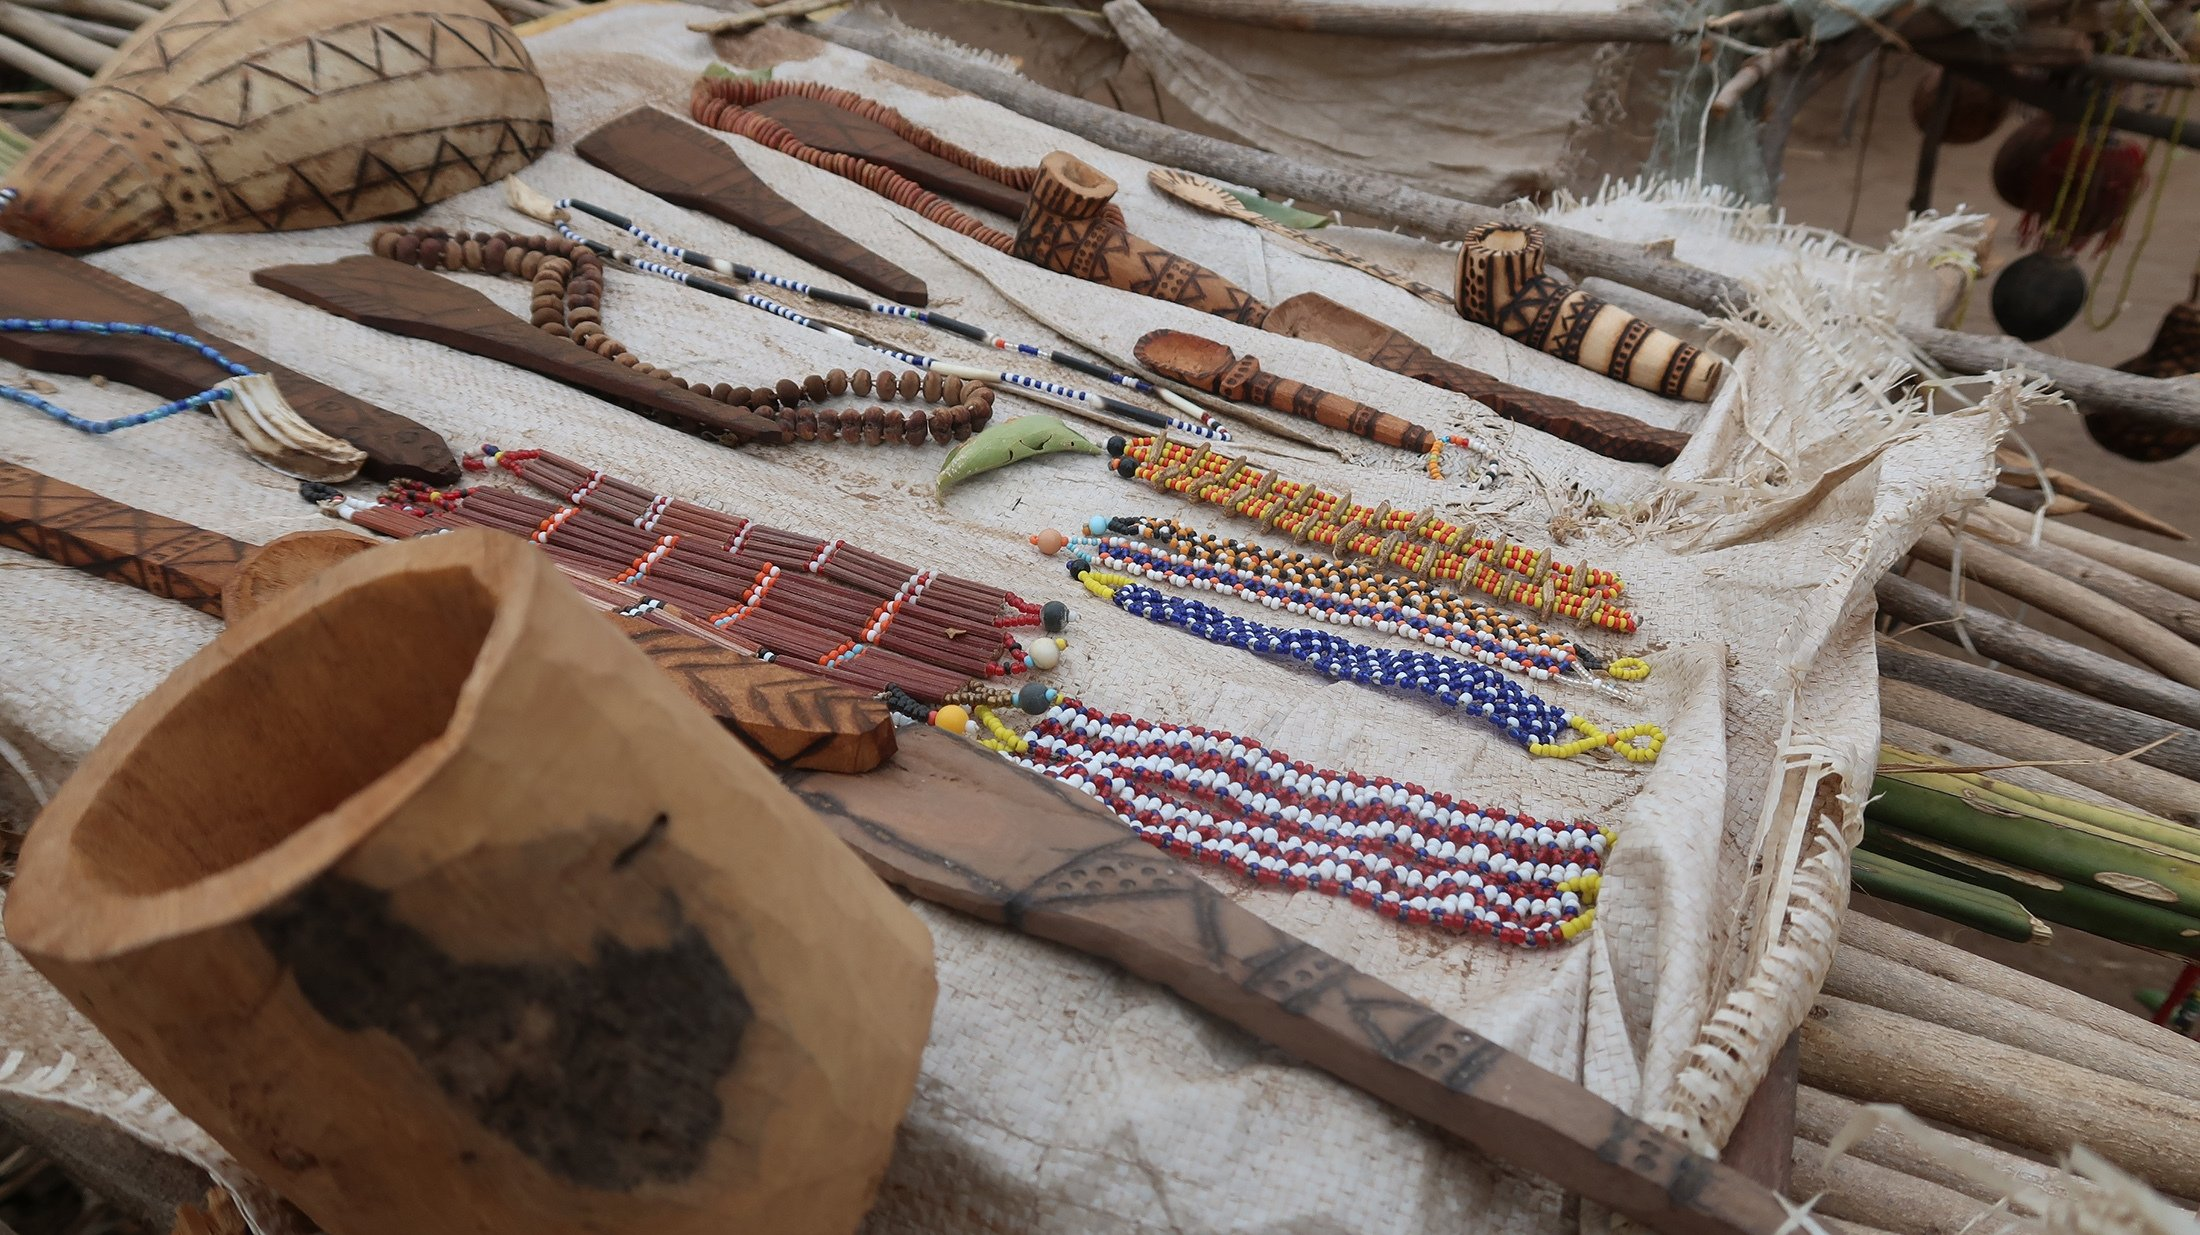 Souvenirs made by the Hadza people can be seen on a table in Tanzania. (Shutterstock Photo)